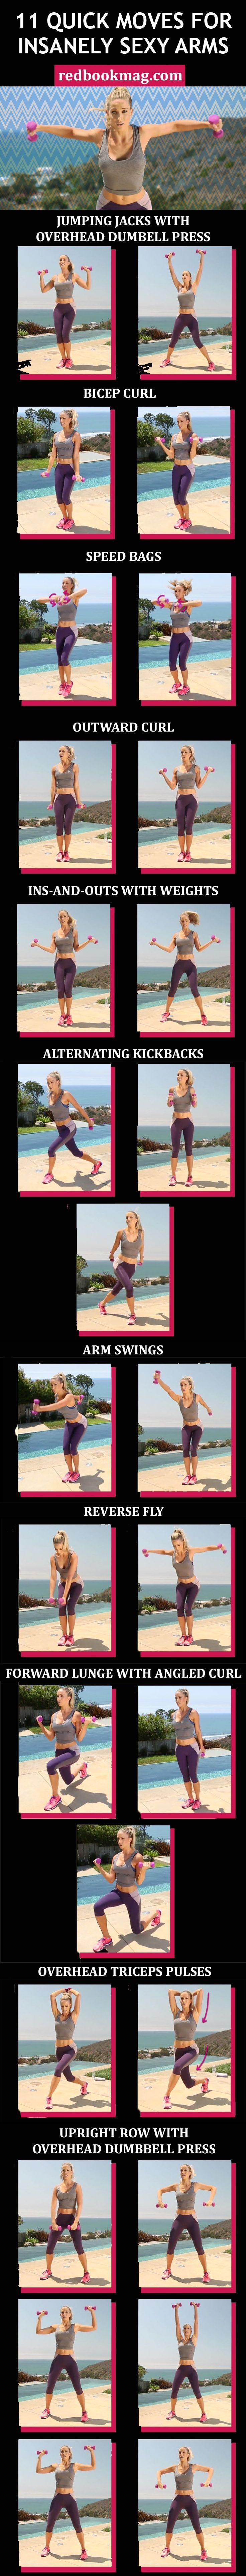 SEXY ARM WORKOUT FOR WOMEN: Grab a set of 2- to 3-pound dumbbells, and do 20 to 30 reps of each move in quick succession to tone your arms, back, chest, and legs. Repeat the entire sequence two to three times to get toned arms fast! Click through for the entire arm workout with weights that you can do at home or at the gym. #totalbodytransformation